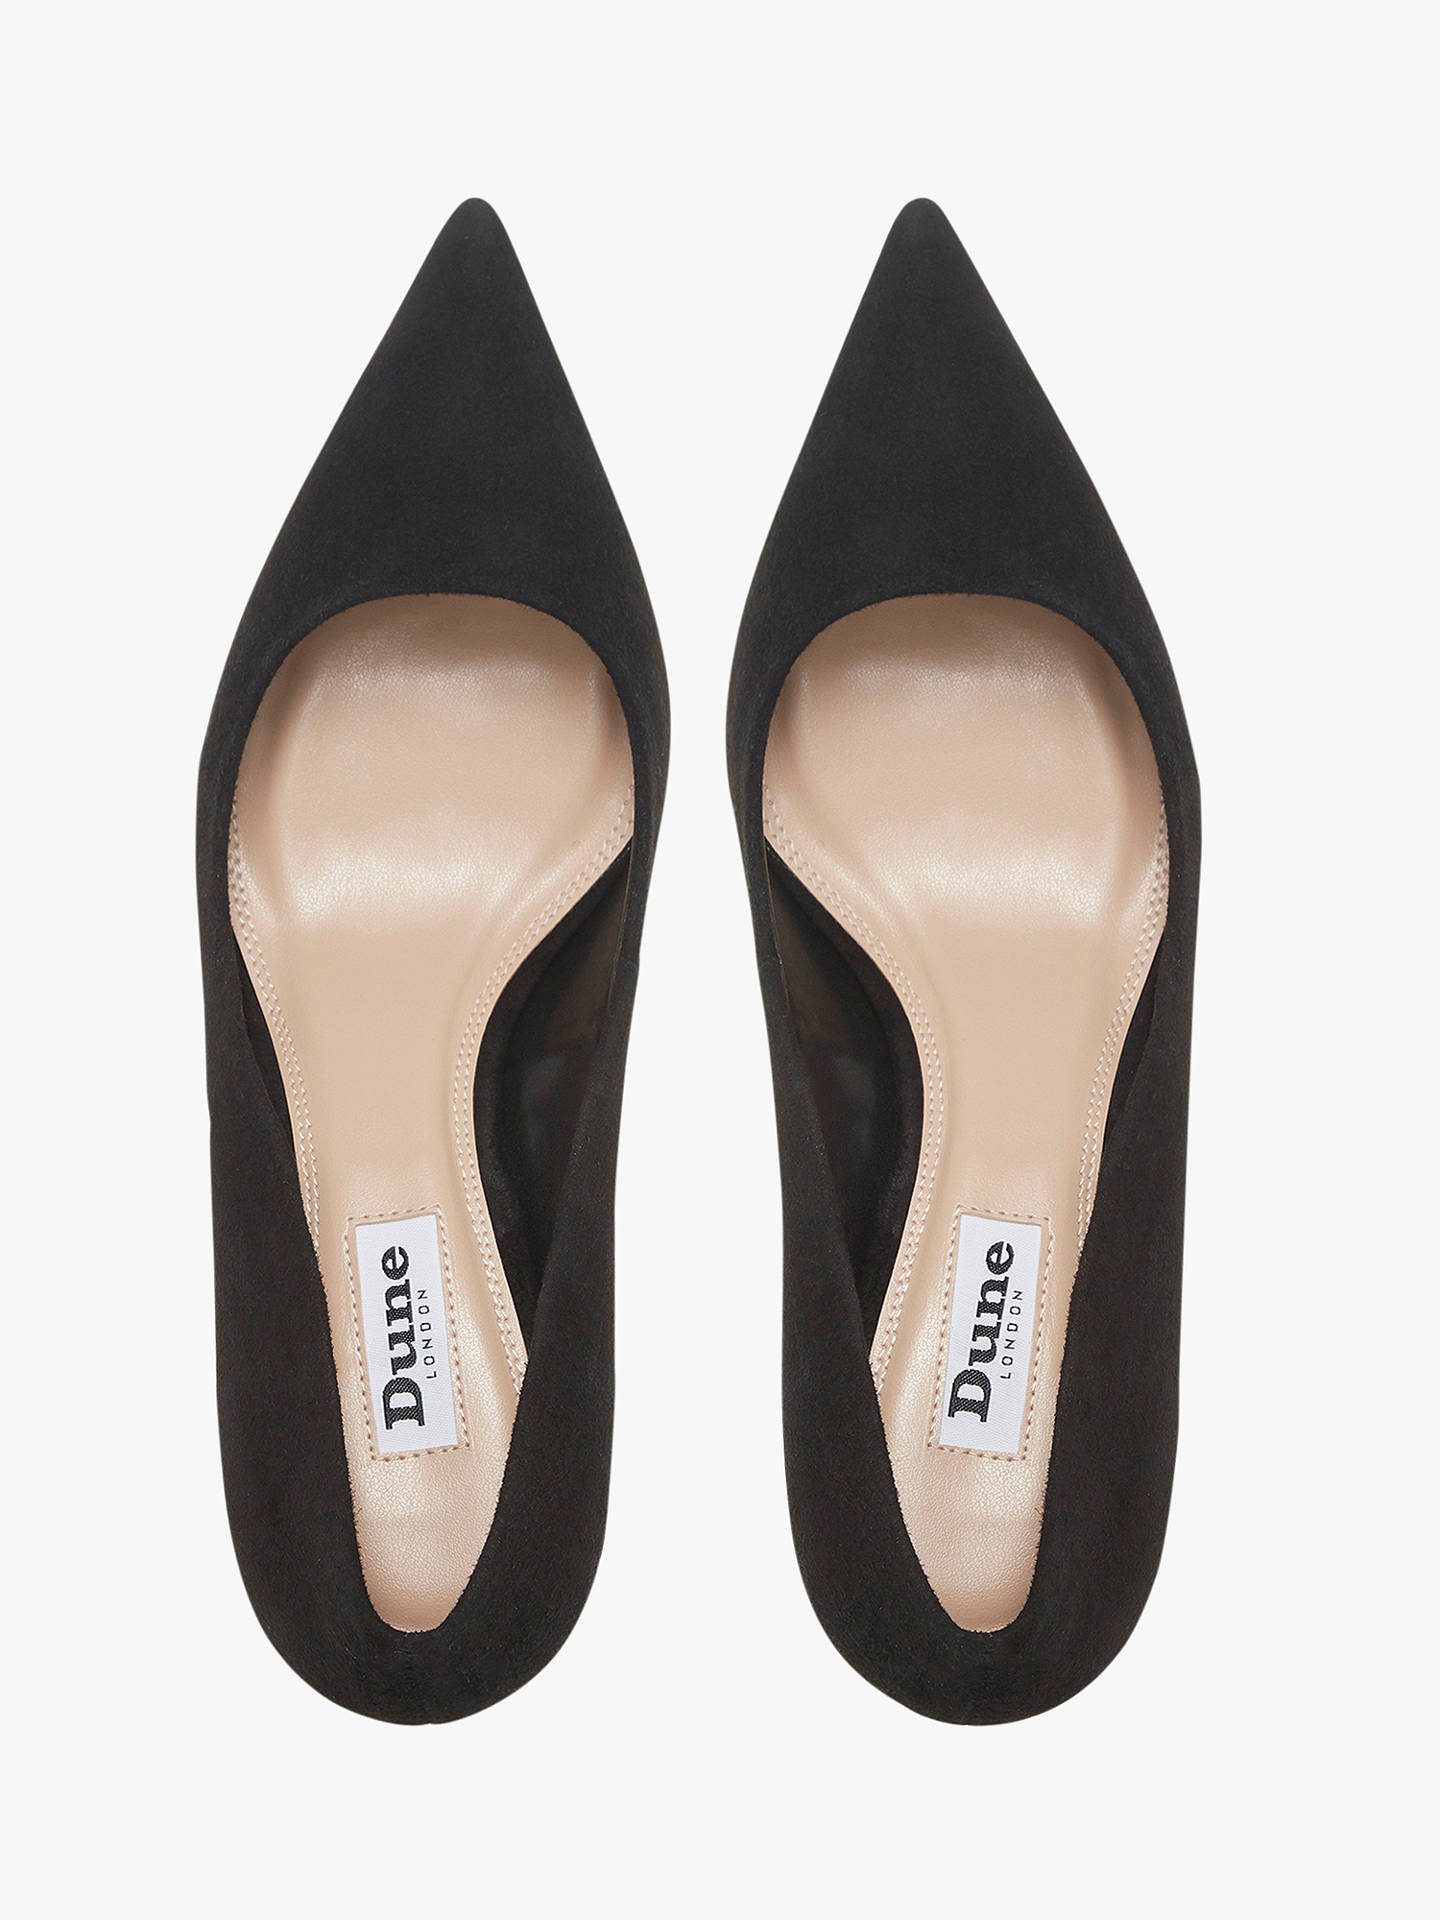 80cccea21bf Dune Astal Pointed Toe Court Shoes at John Lewis & Partners